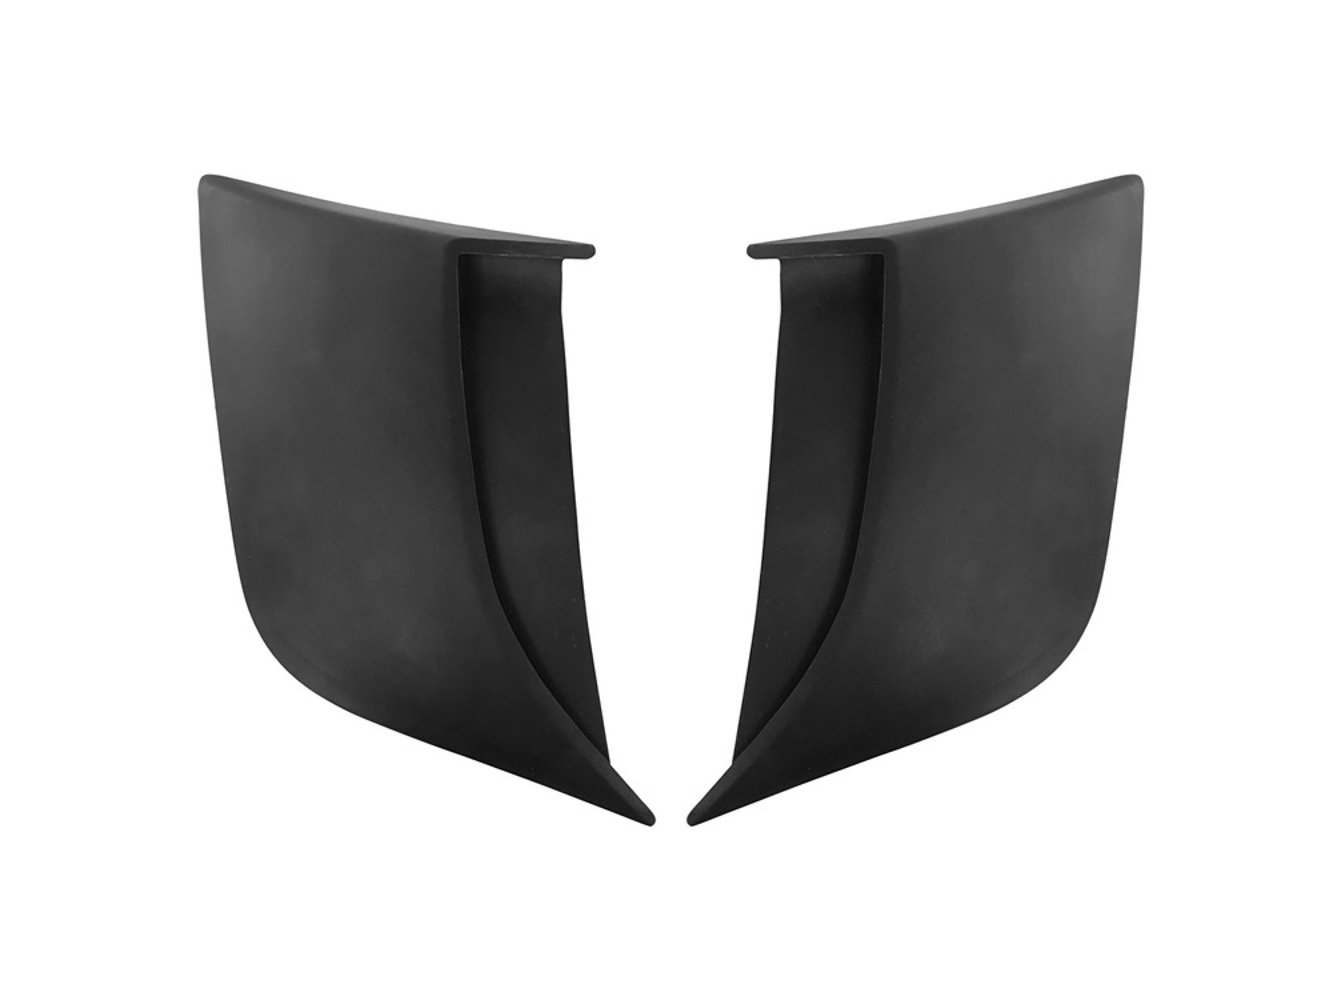 Drake Automotive Group 2015-19 Mustang Lower Qu arter Panel Side Scoops